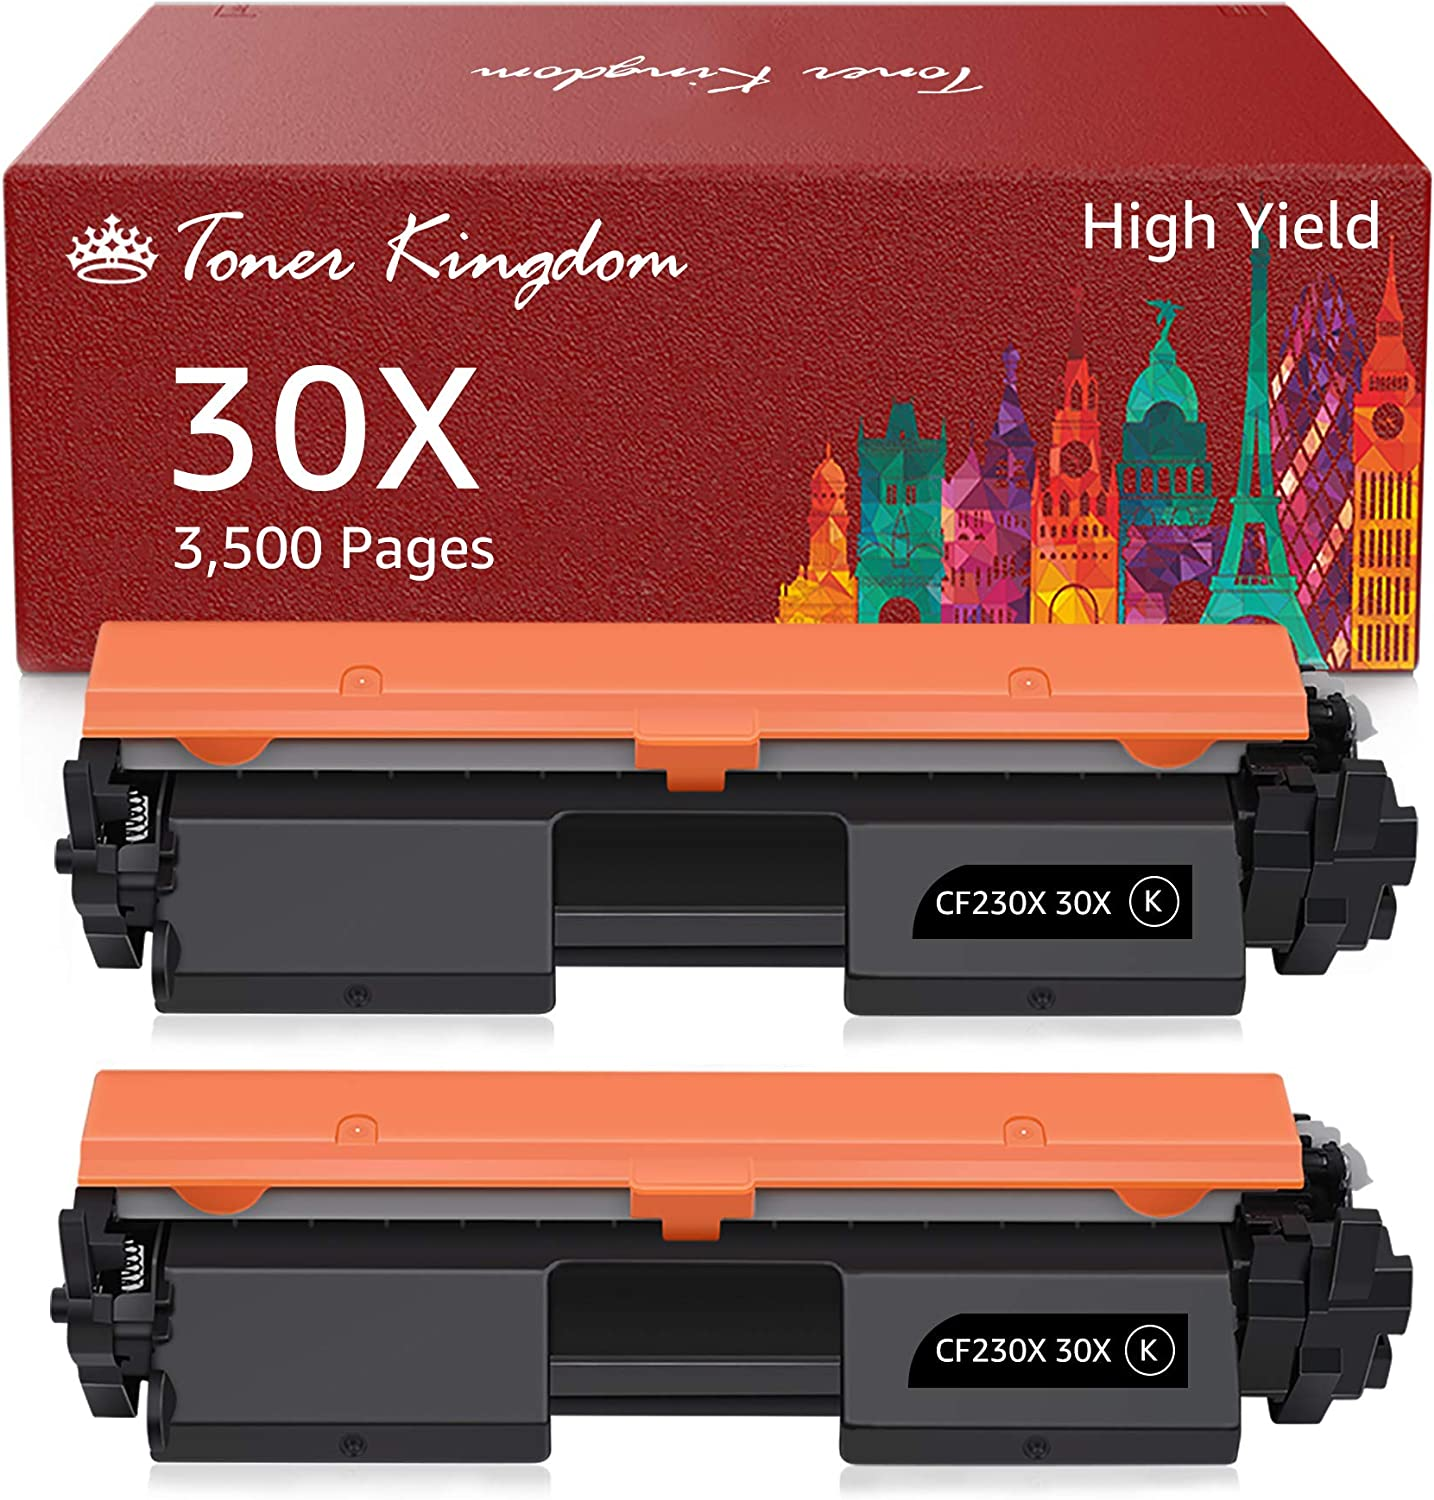 Toner Kingdom Compatible Toner Cartridge Replacement for HP 30X CF230X 30A CF230A for HP Laserjet Pro MFP M203dw M227fdw M227fdn M203d M203dn M227sdn M227 M203 Printer (2 Black)